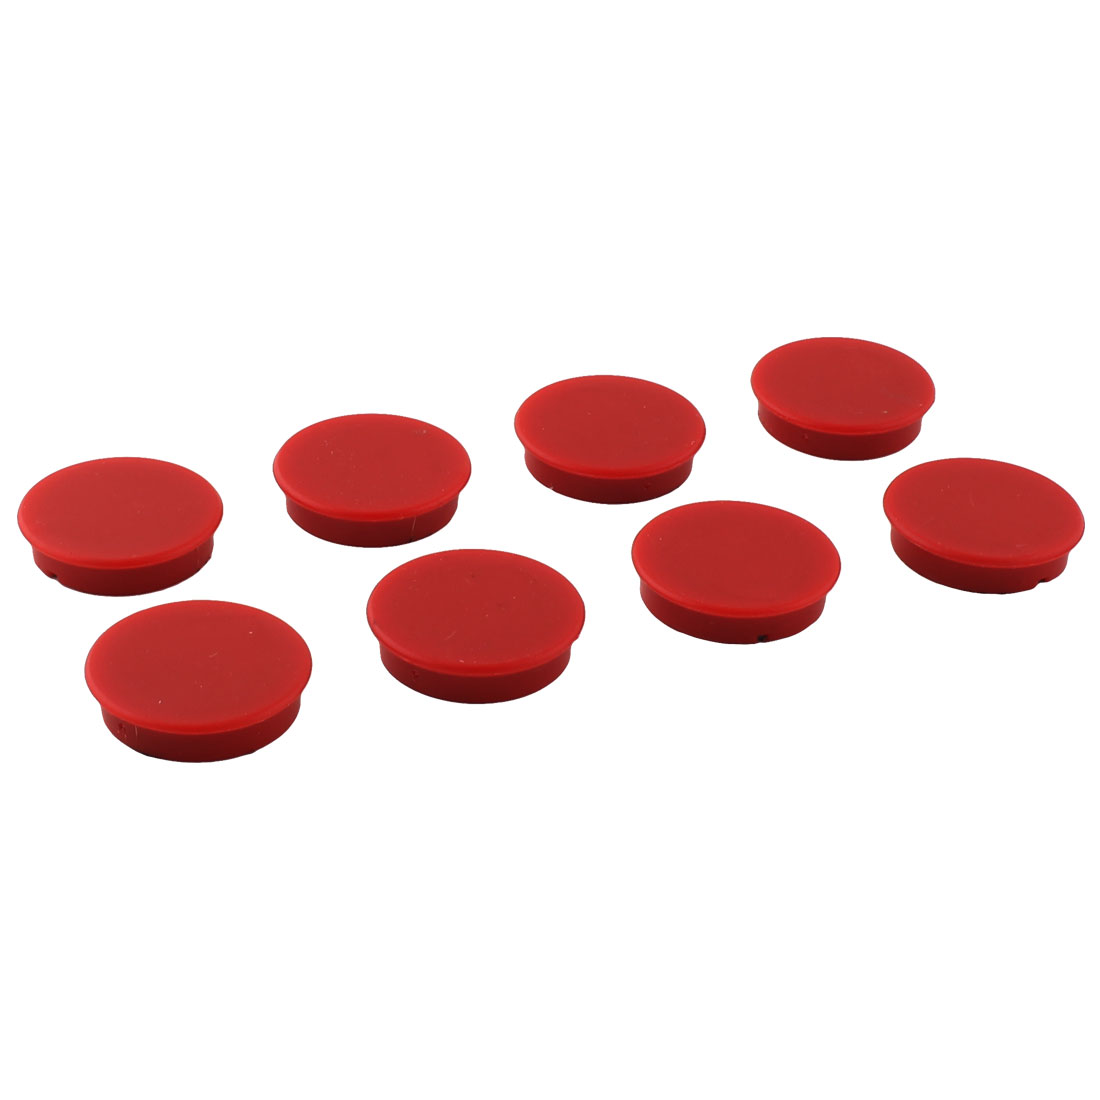 Office Home Plastic Shell Decoration Round Shaped Refrigerator Magnetic Sticker Red 8pcs